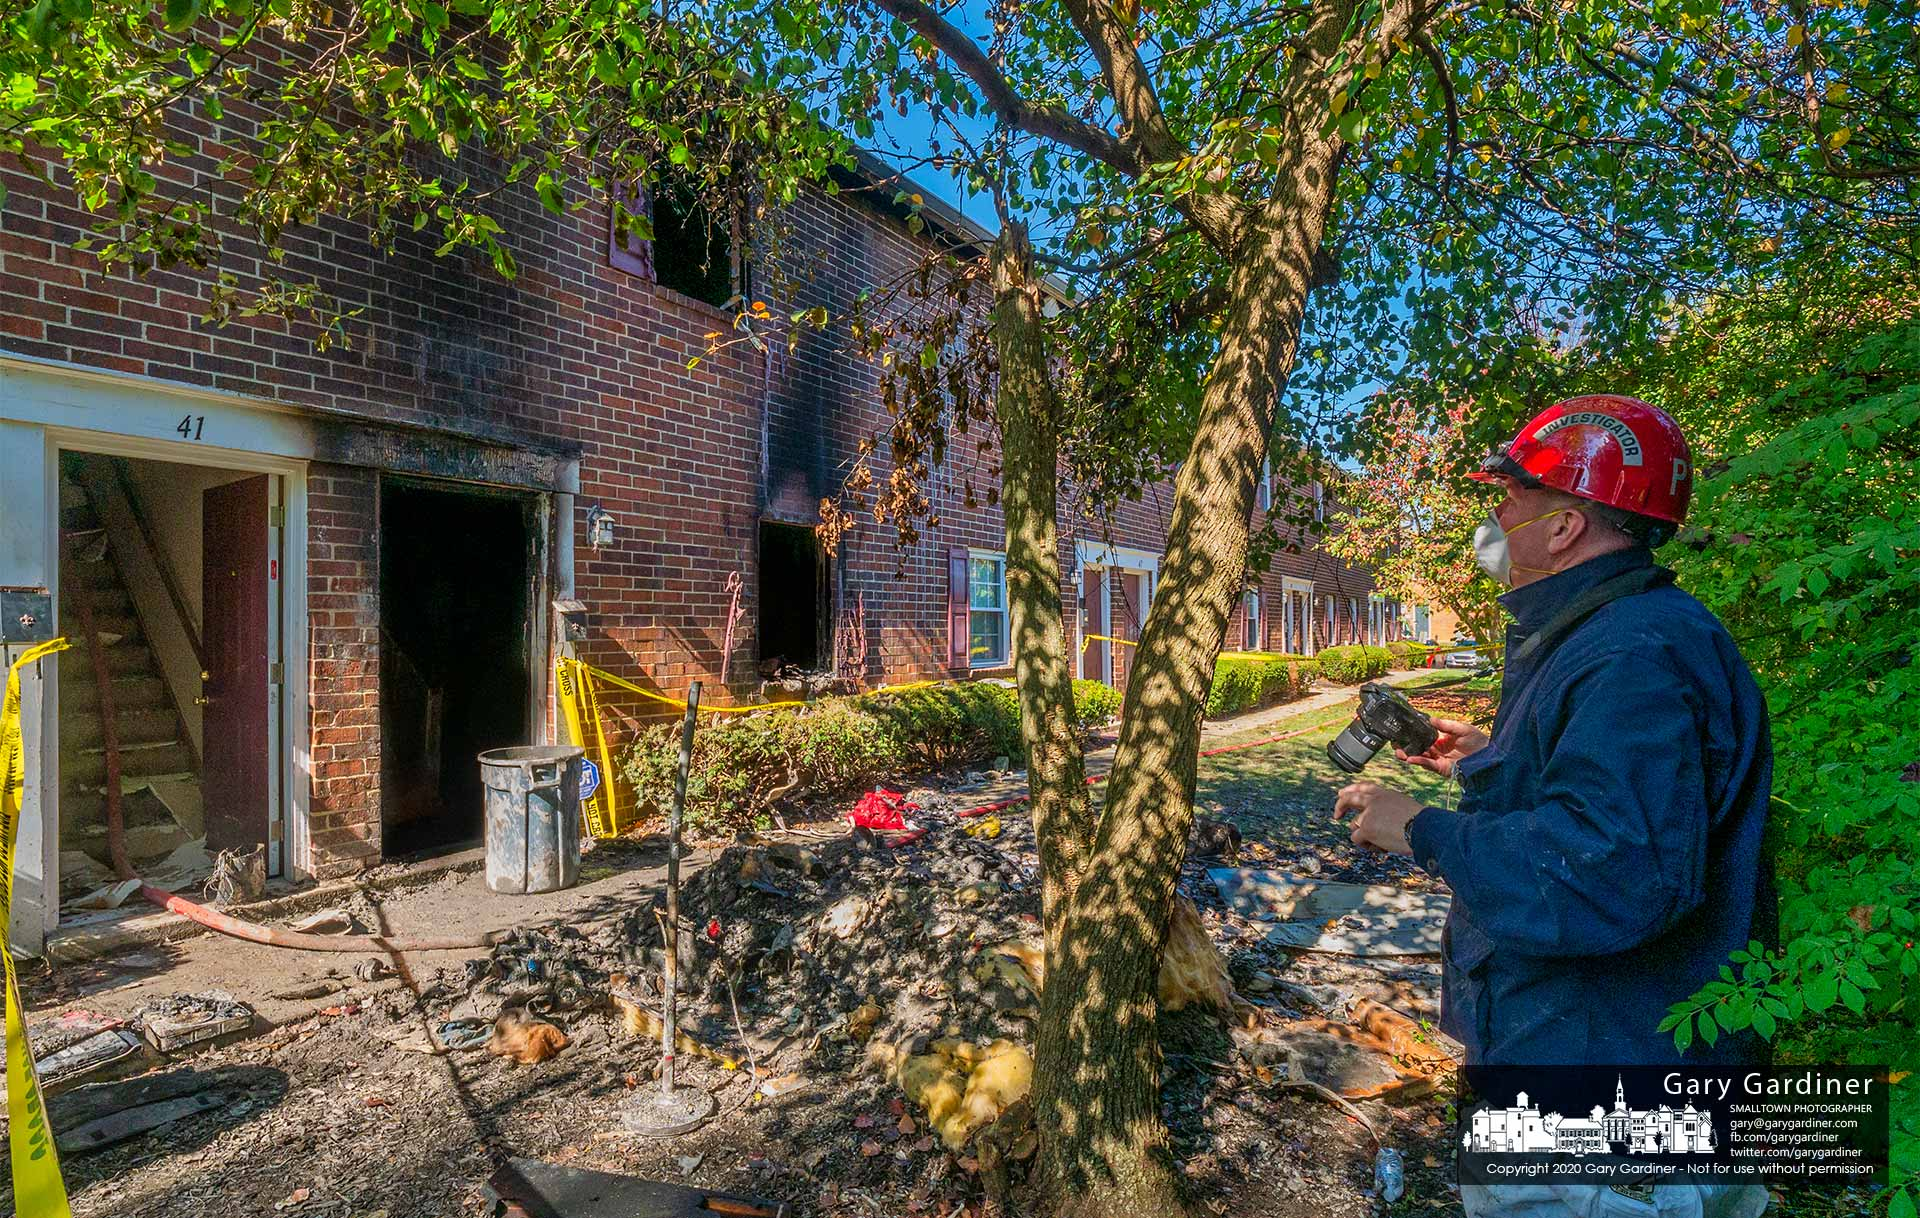 An investigator photographs an apartment complex where one person died in an overnight fire. My Final Photo for Oct. 17, 2020.